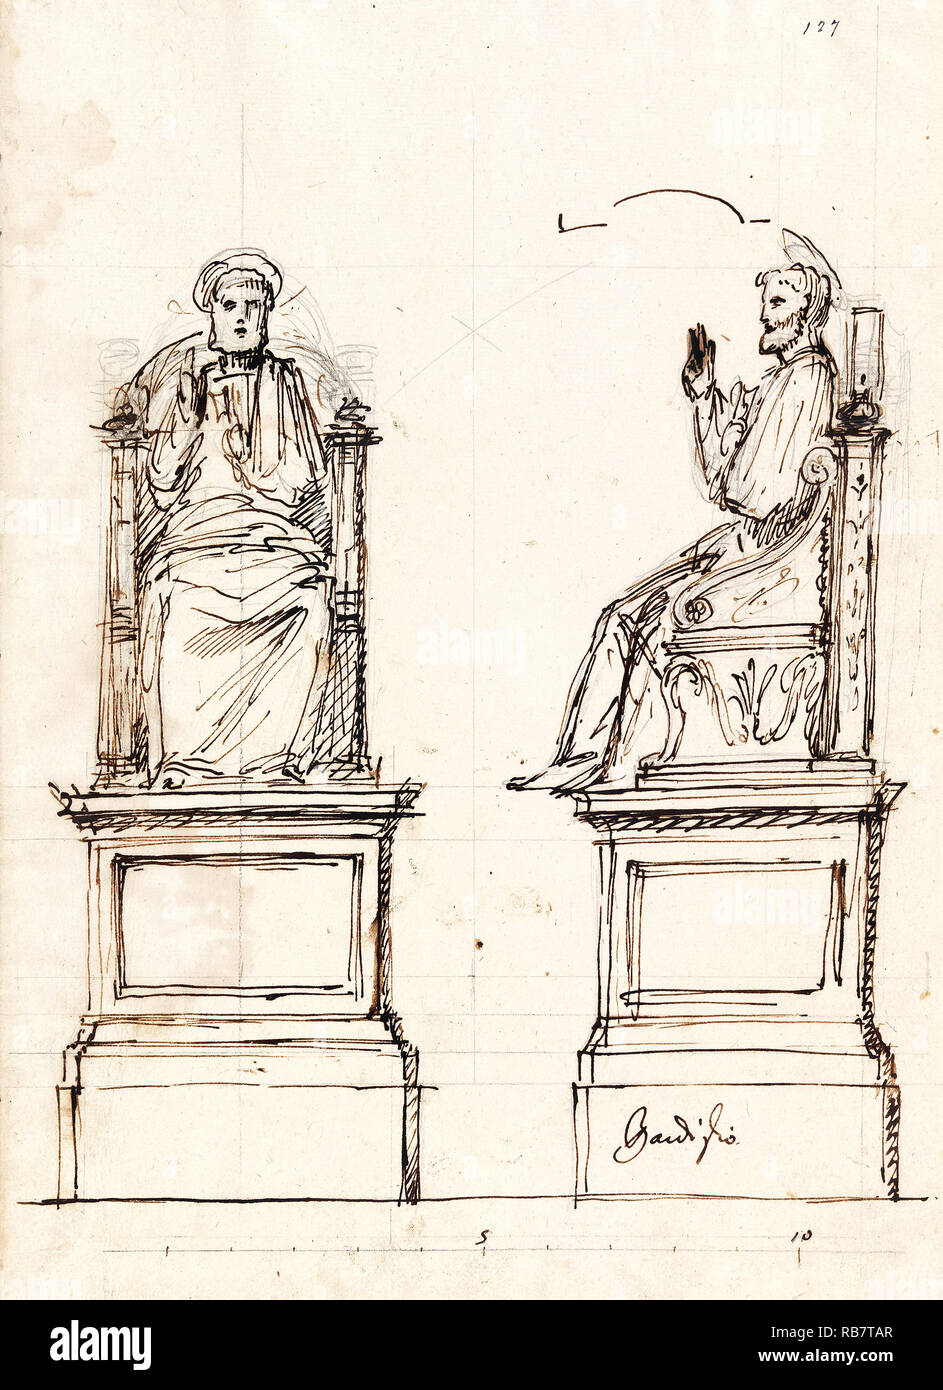 Luigi Vanvitelli, Design for a Marble Throne for the Statue of St. Peter, St. Peter's, Rome 1754 Drawings, Pen, brown ink, graphite on paper, Cooper Hewitt, Smithsonian Design Museum, USA. - Stock Image